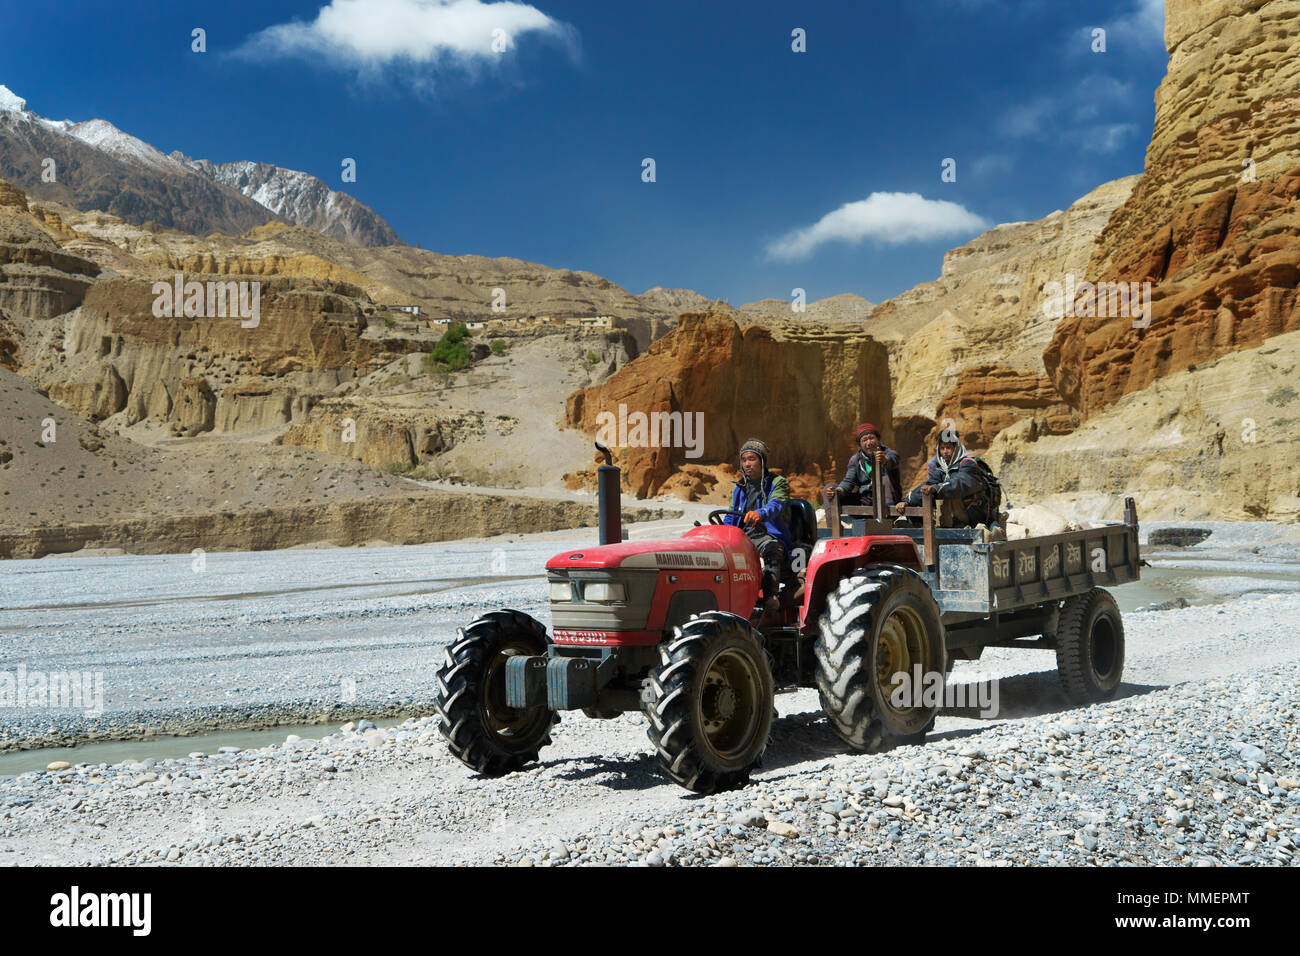 loba-workers-travelling-on-a-tractor-along-the-dry-river-bed-of-the-kali-gandaki-river-near-chele-upper-mustang-region-nepal-MMEPMT.jpg